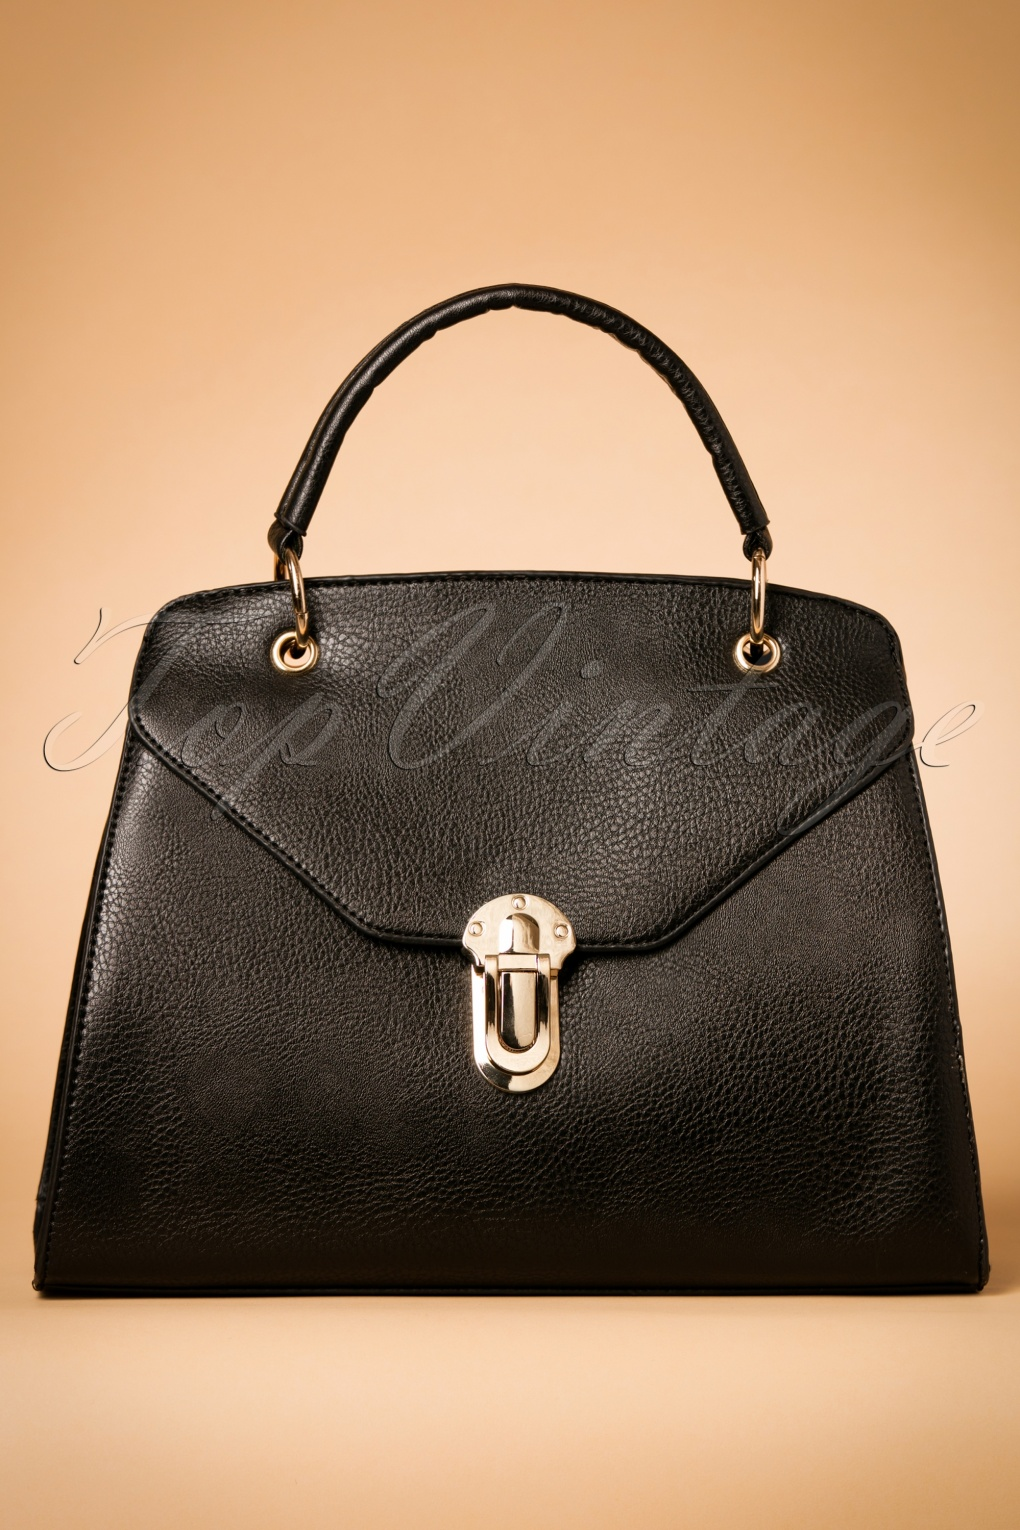 Vintage & Retro Handbags, Purses, Wallets, Bags 60s Classy Jane Handbag in Black £30.52 AT vintagedancer.com